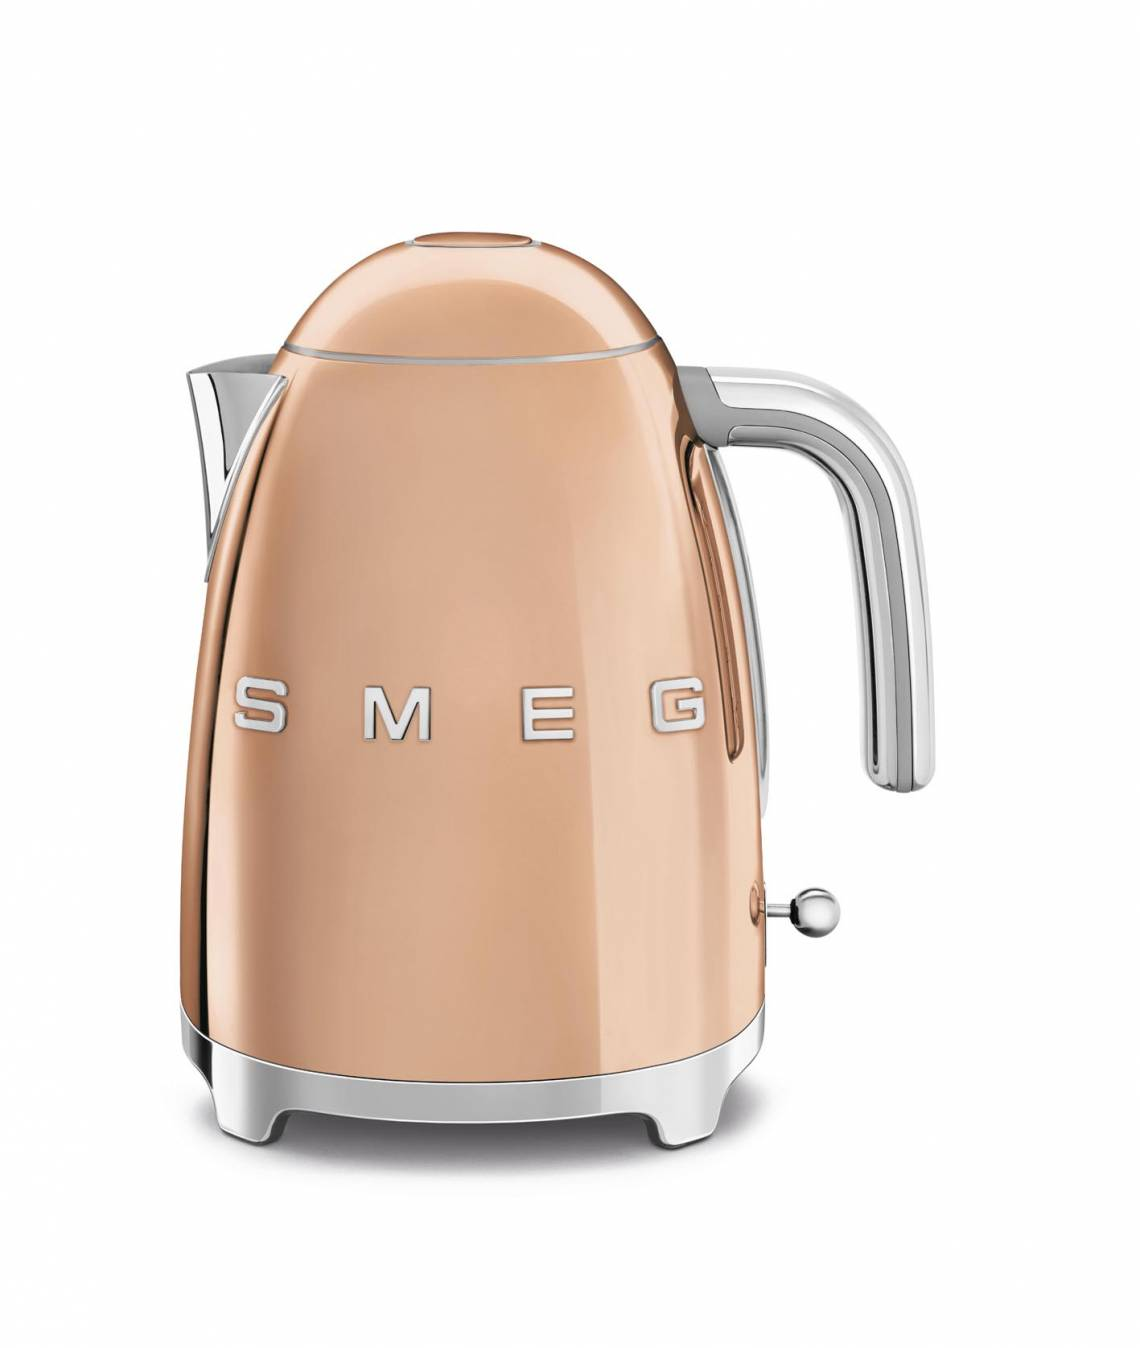 smeg: Luxuriöse Sondereditionen - Wasserkocher Rosegold, KLF03RGEU